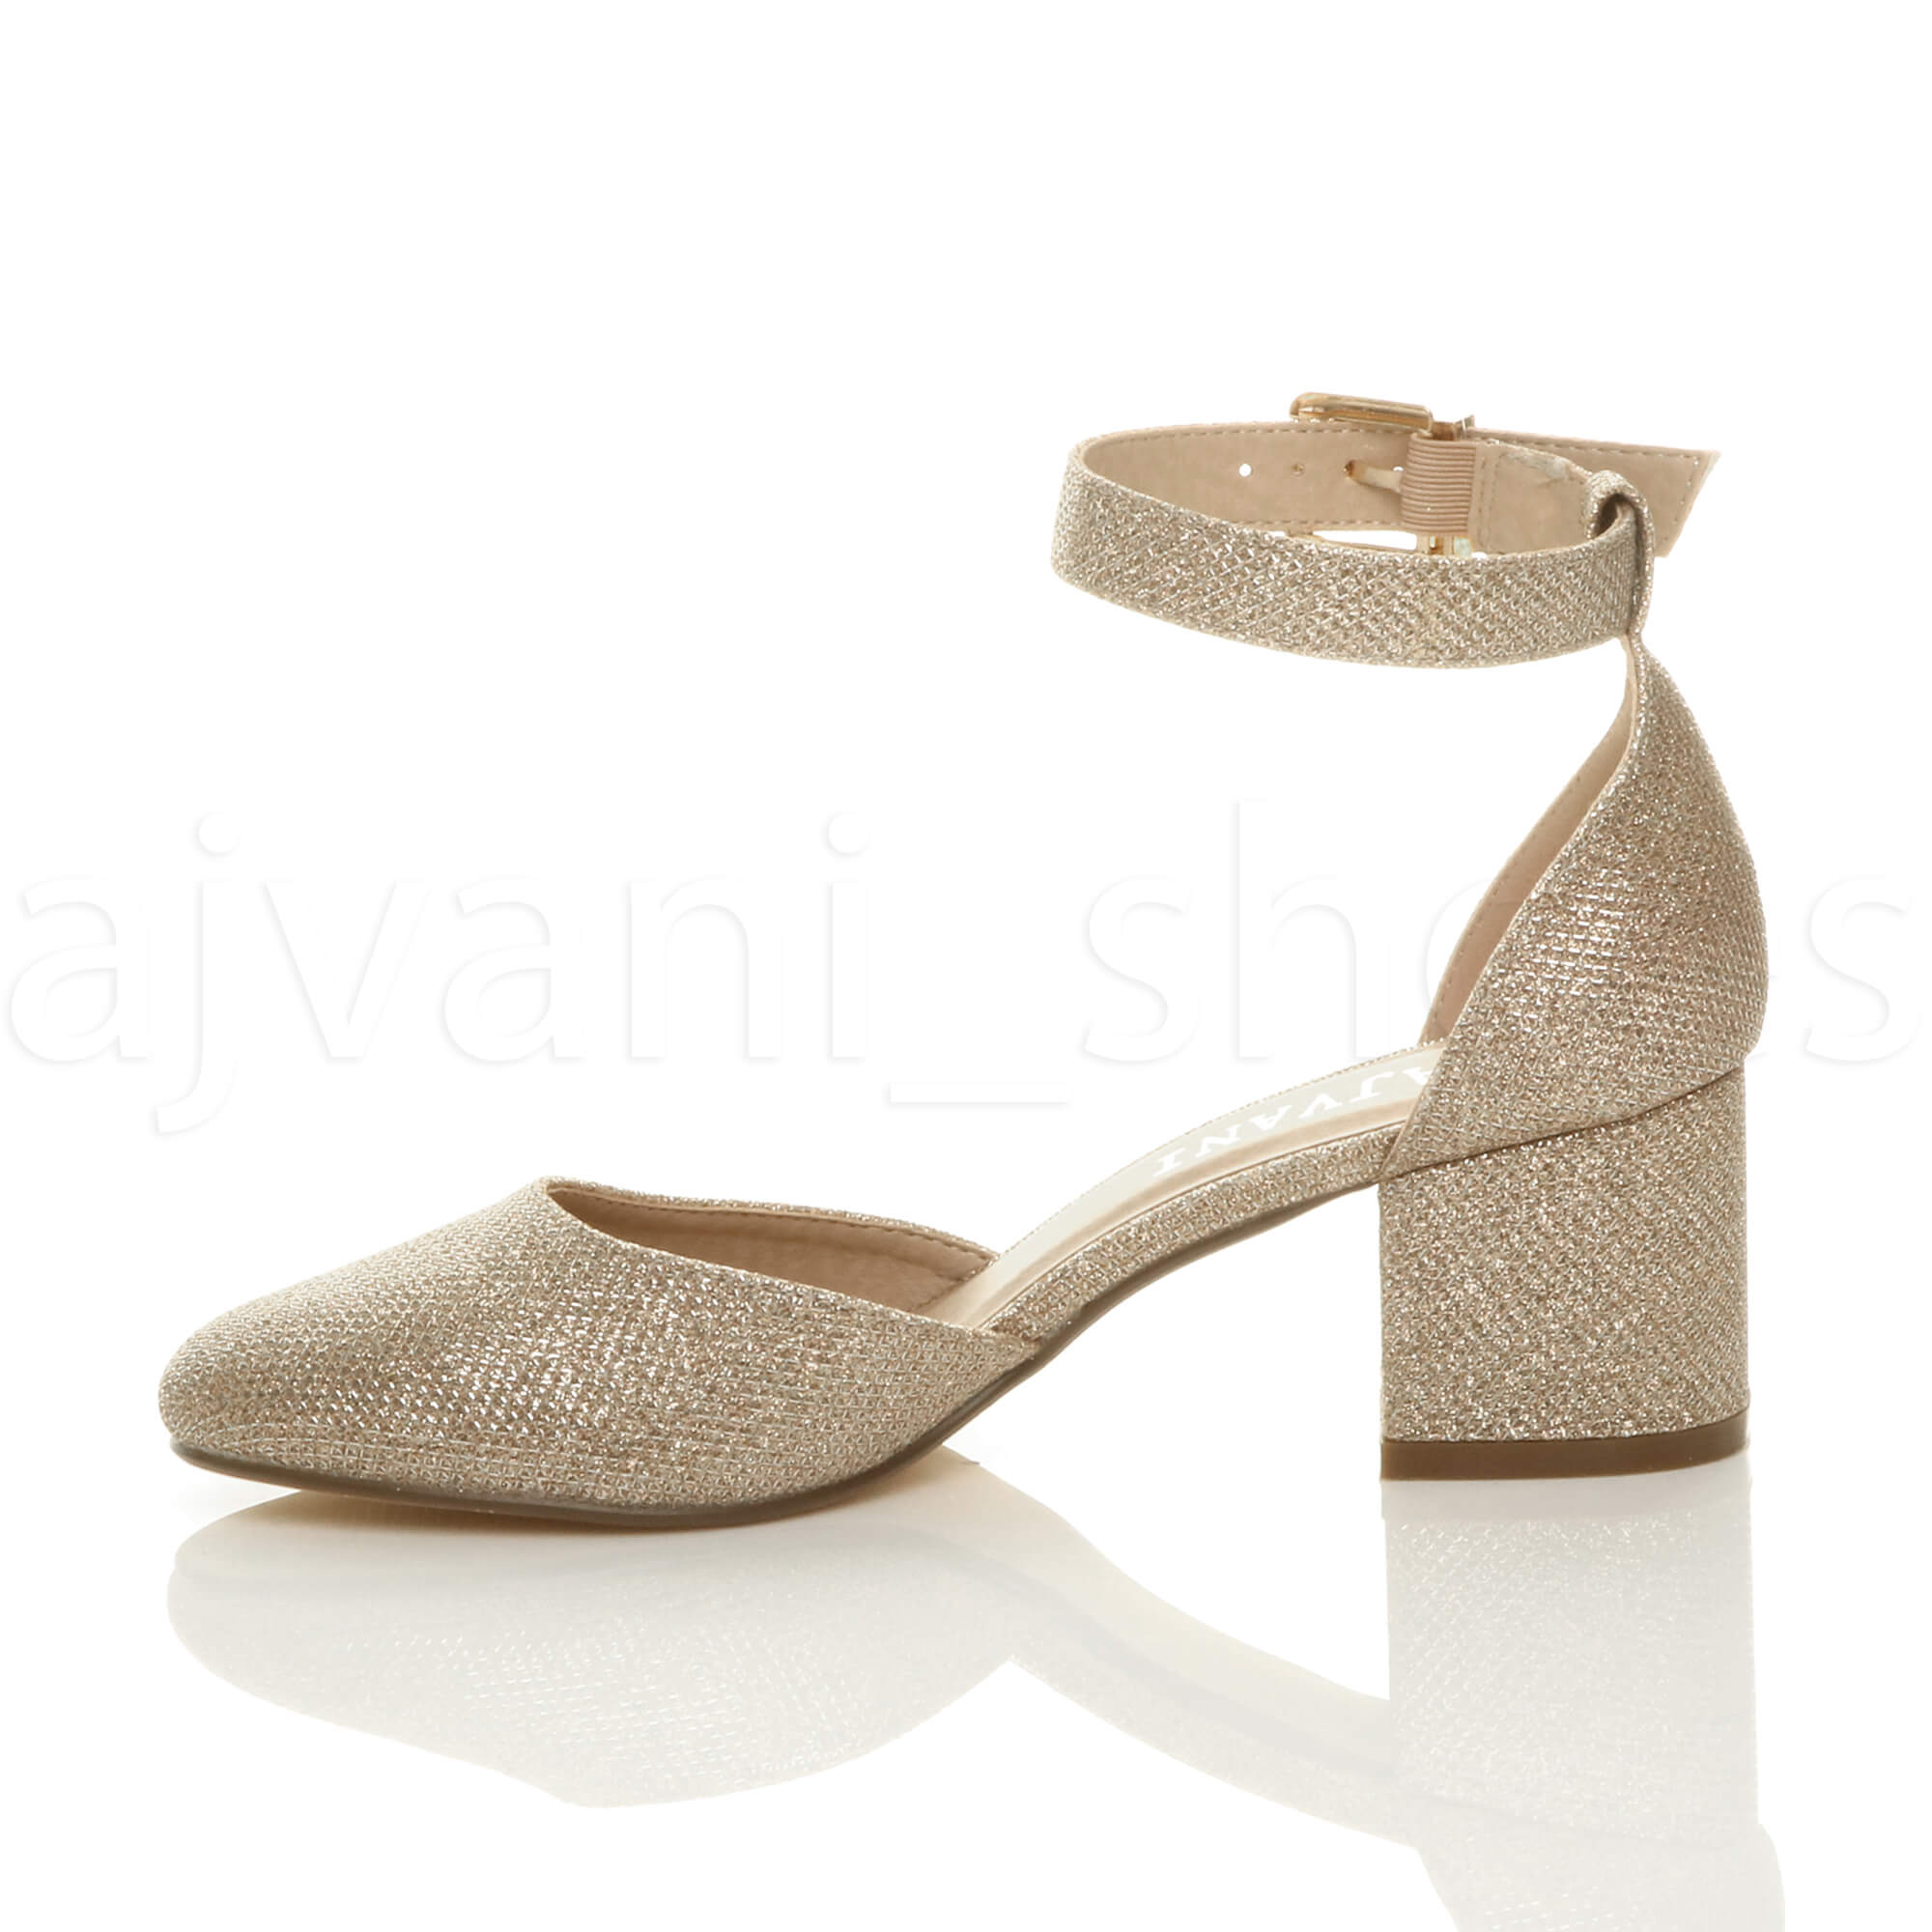 WOMENS-LADIES-LOW-MID-BLOCK-HEEL-ANKLE-STRAP-MARY-JANE-COURT-SHOES-SANDALS-SIZE thumbnail 60